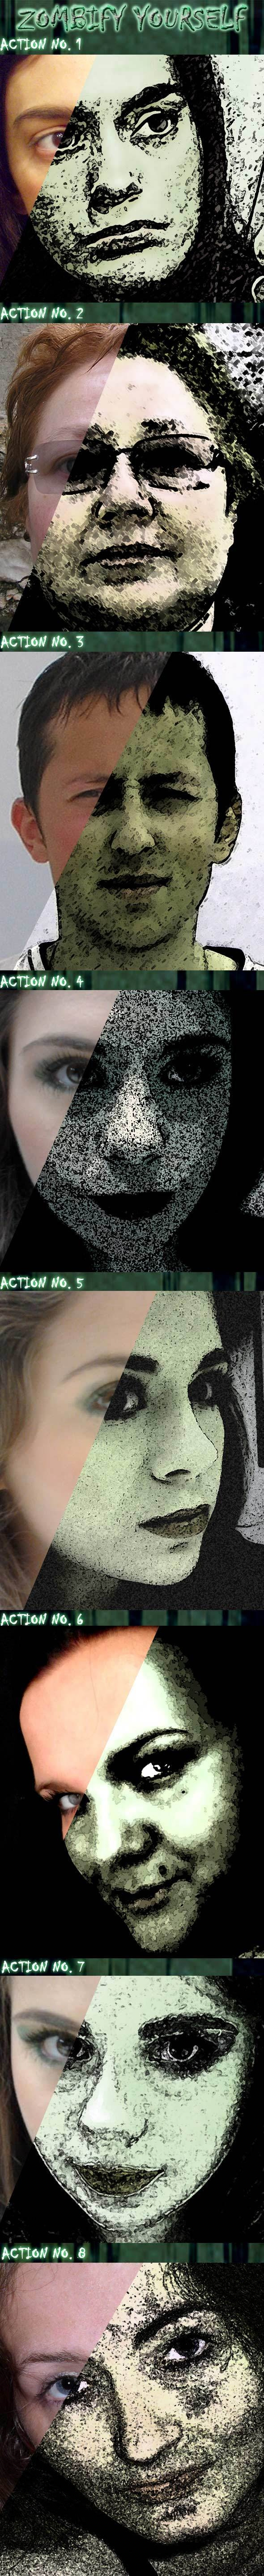 8 'Zombify Yourself' Photoshop Actions - Photo Effects Actions